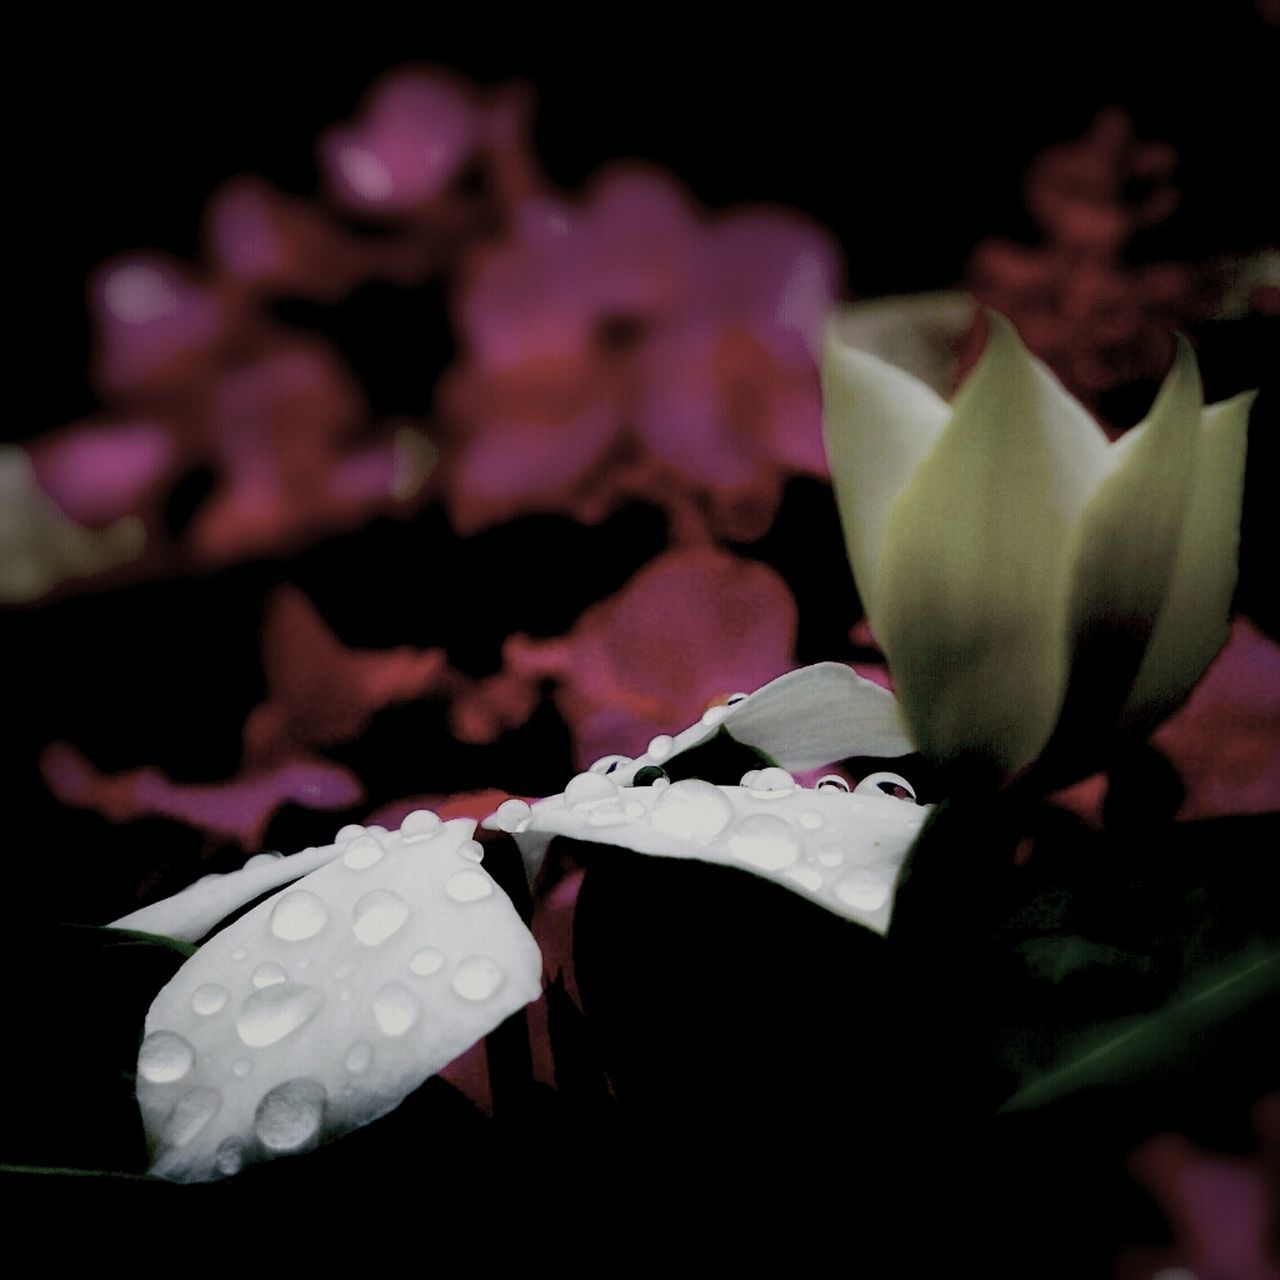 flower, petal, fragility, beauty in nature, freshness, flower head, nature, no people, close-up, pink color, rose - flower, growth, blooming, black background, night, outdoors